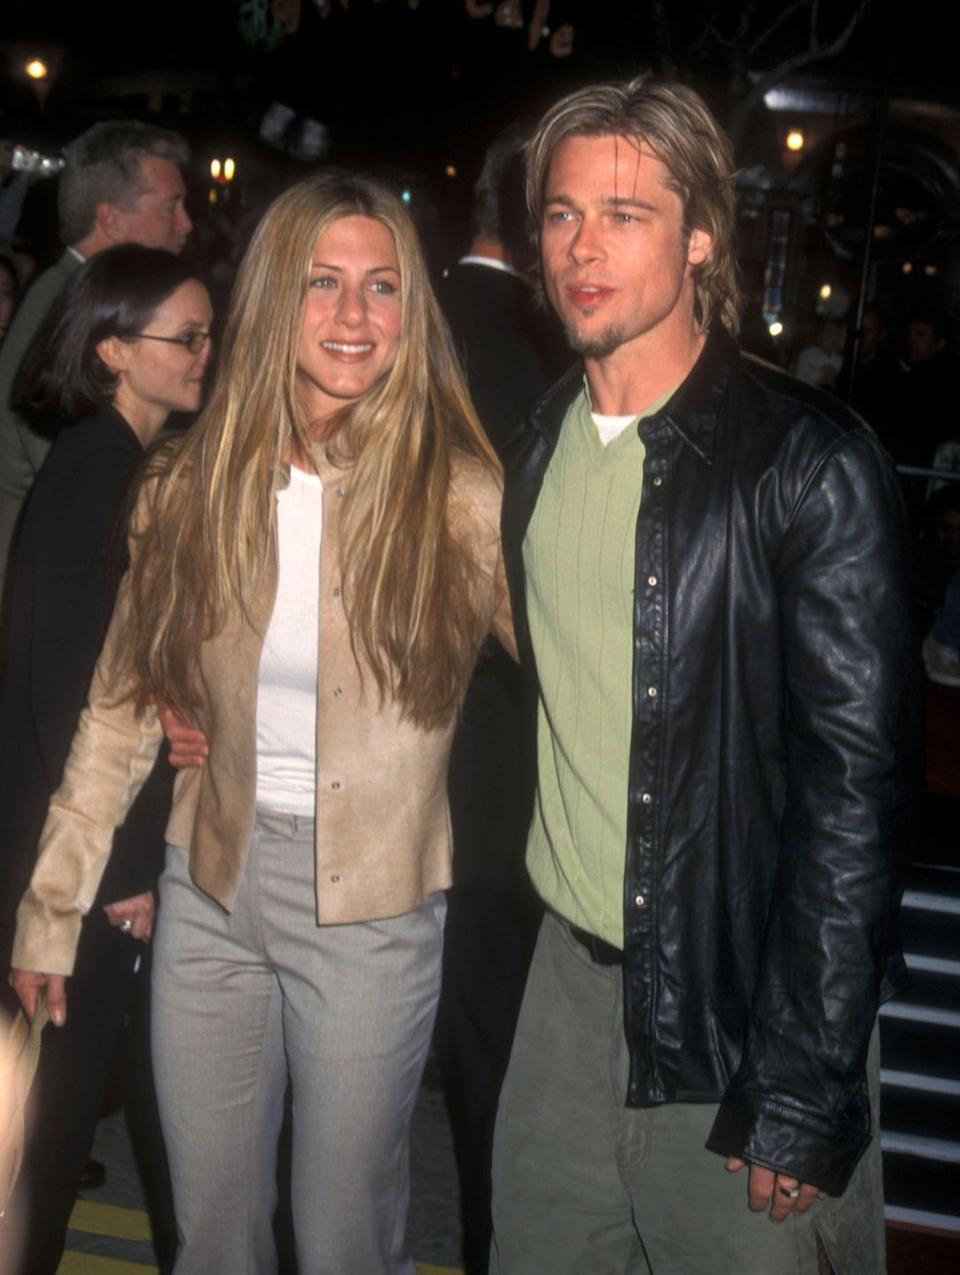 <p>Pitt and Aniston go on their first date after being set up by their agents—a true Hollywood romance, right? They <em>try</em> to keep things quiet for as long as they can, but this proves difficult since Pitt is one of the biggest movie stars in the world and Aniston is America's sweetheart. (Also, big ups to their beauty lewks in this photo.)</p>